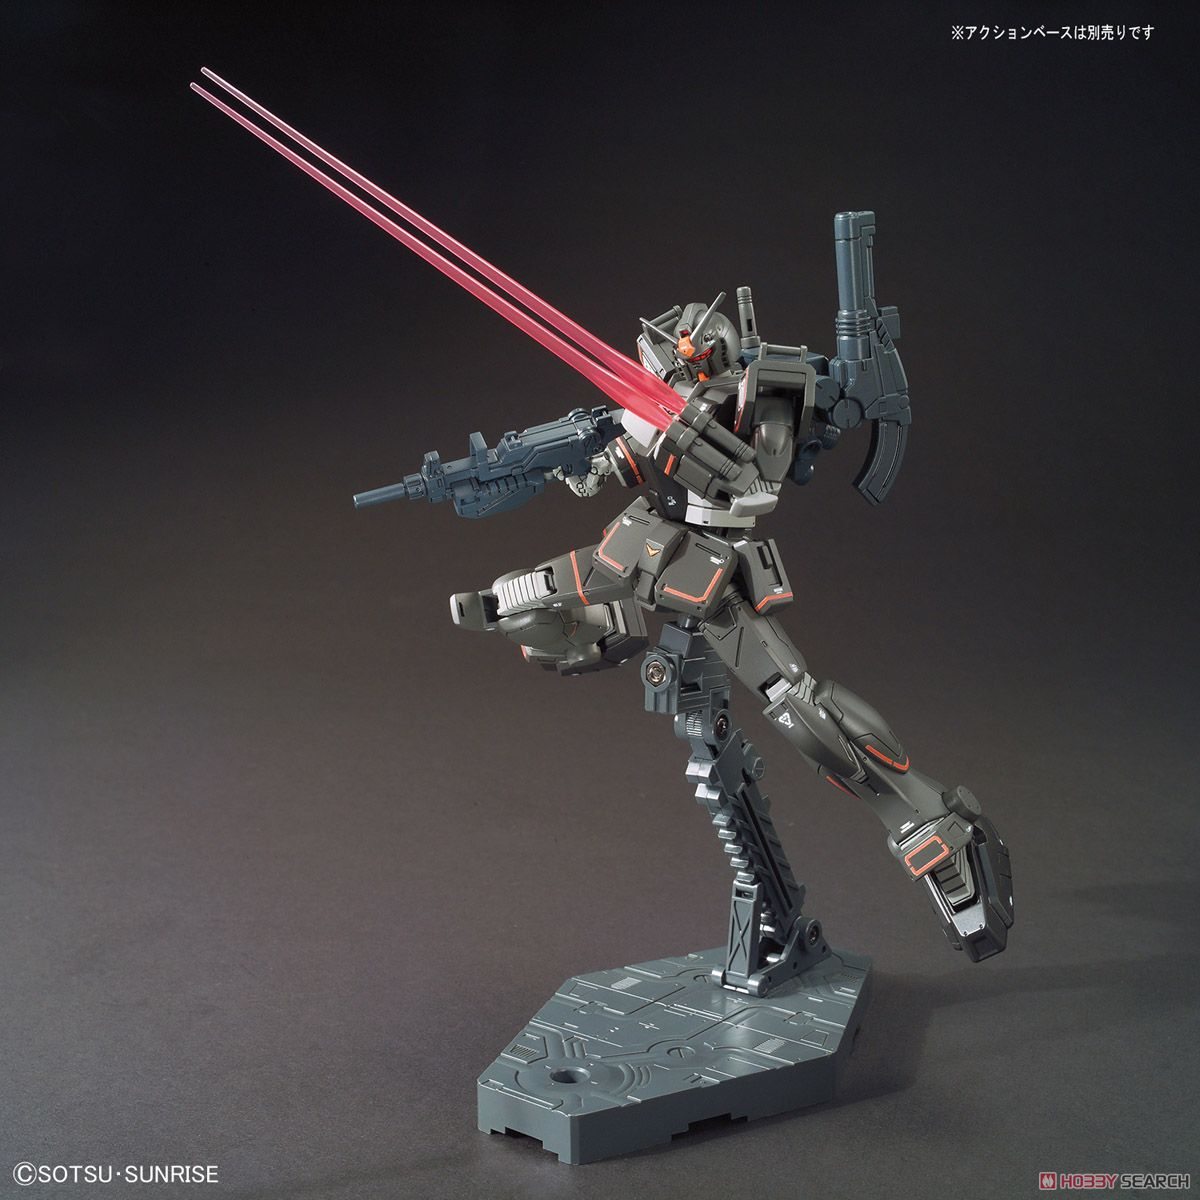 Gundam Local Type (North American Front) (HG) (Gundam Model Kits) Item picture6